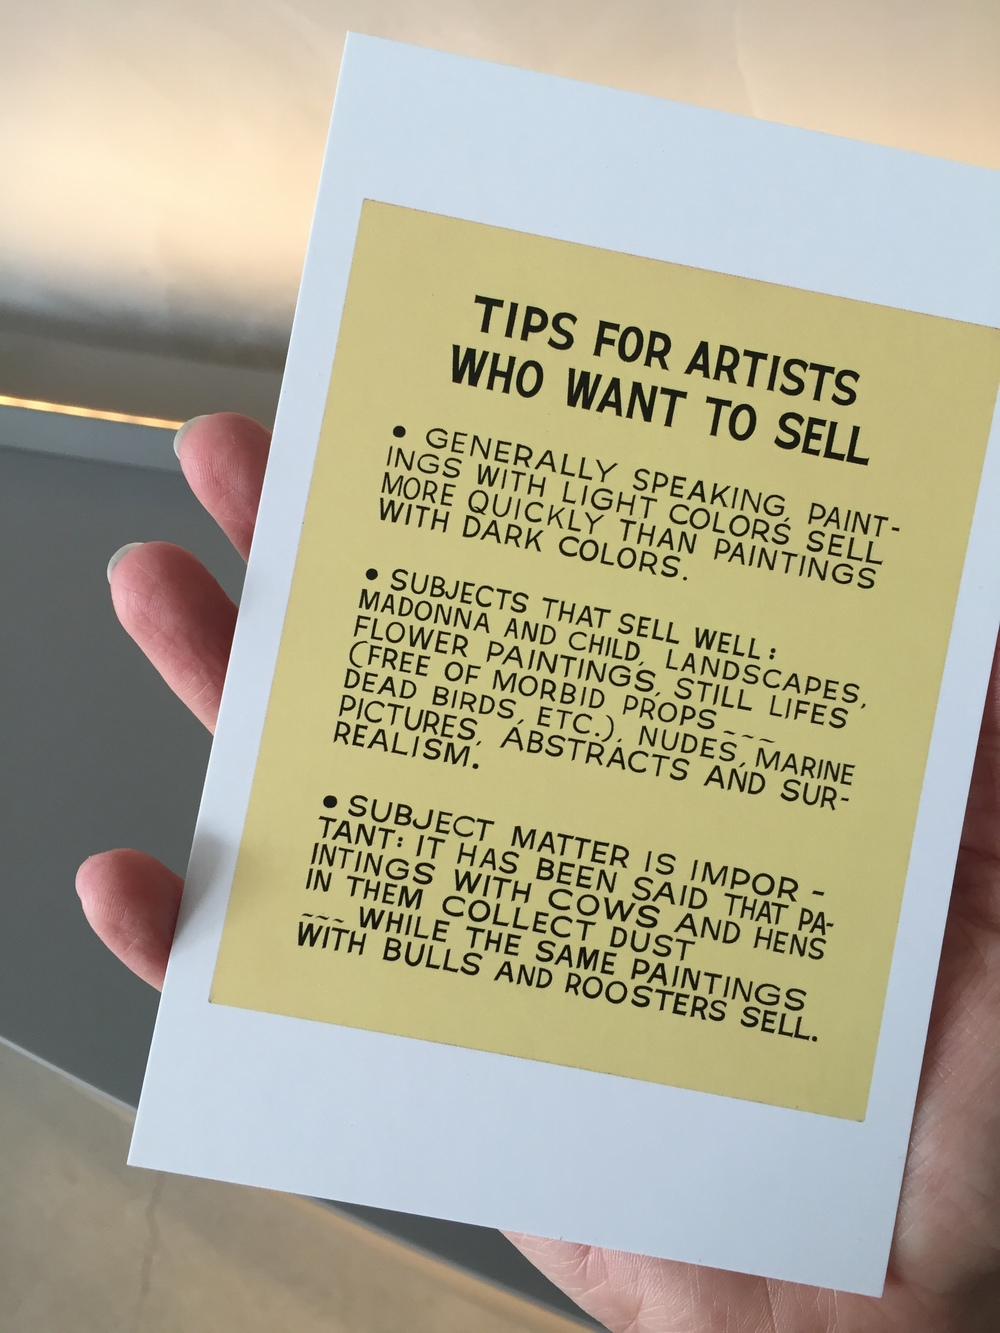 John Baldessari, Tips For Artists Who Want To Sell, 1966-68, via postcard at Broad giftshop